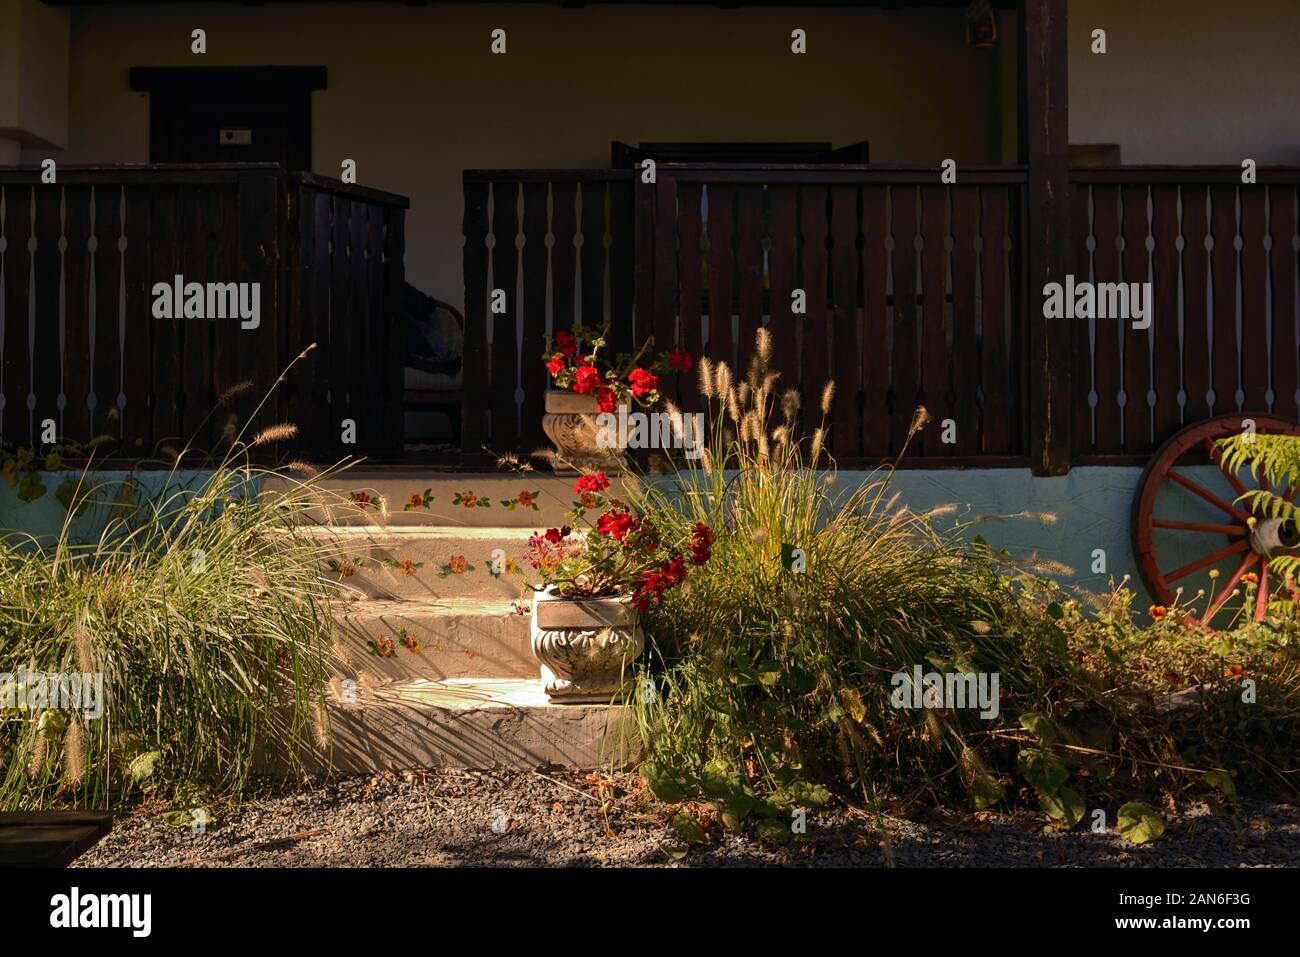 Old Style Rustic House With Laborious Wood Porch Stock Photo